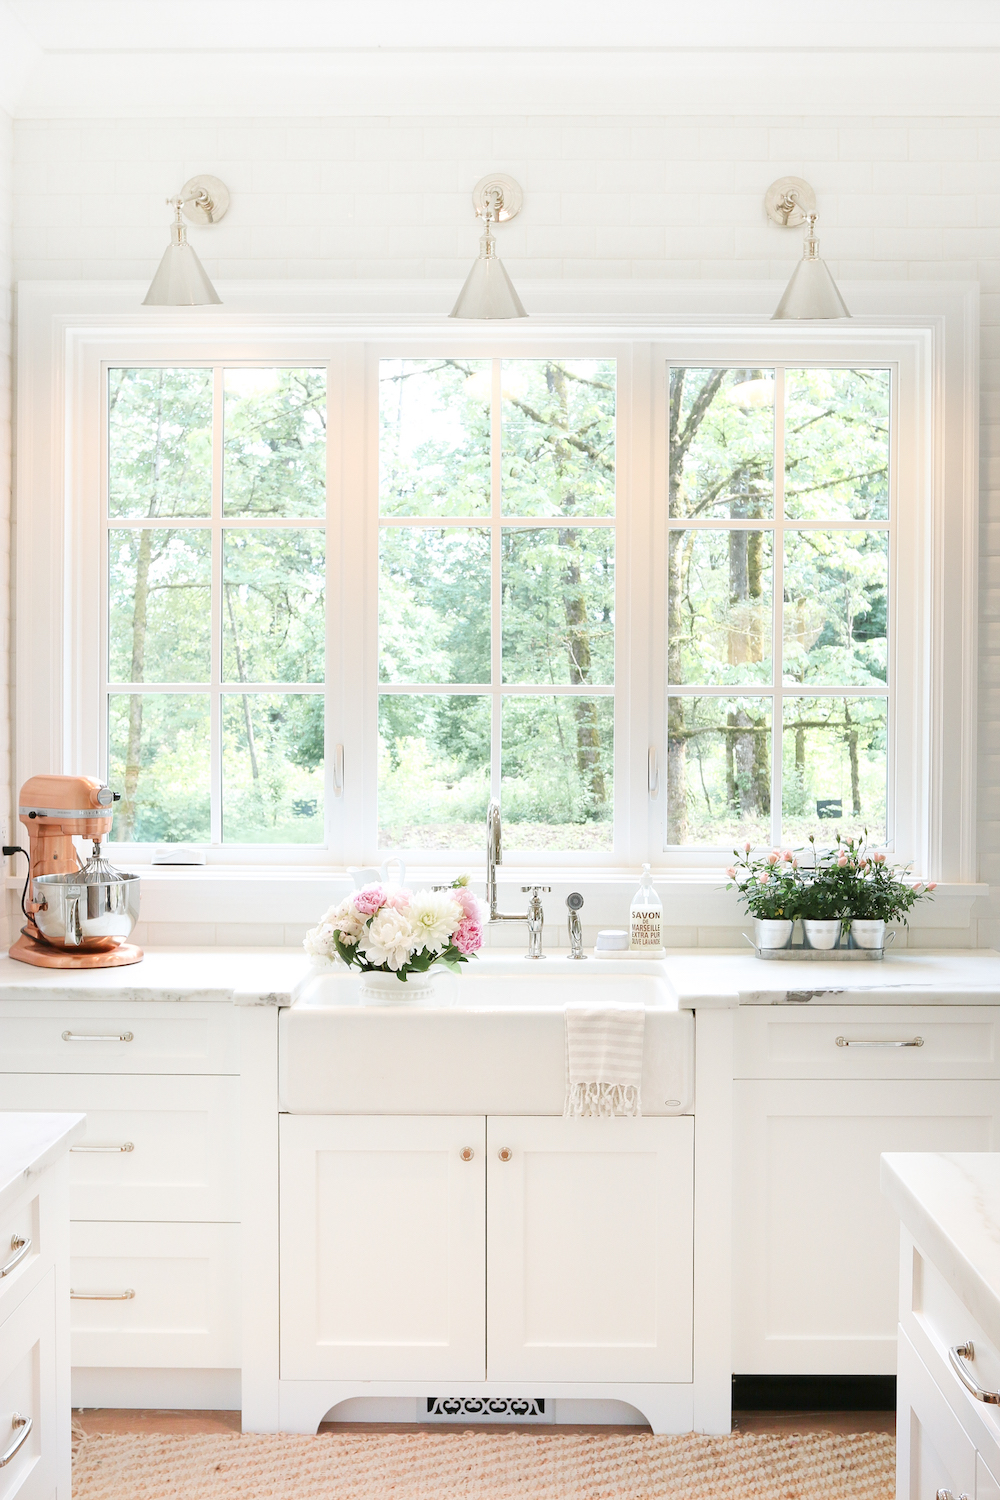 Farmhouse kitchen decor ideas the 36th avenue for White farm kitchen